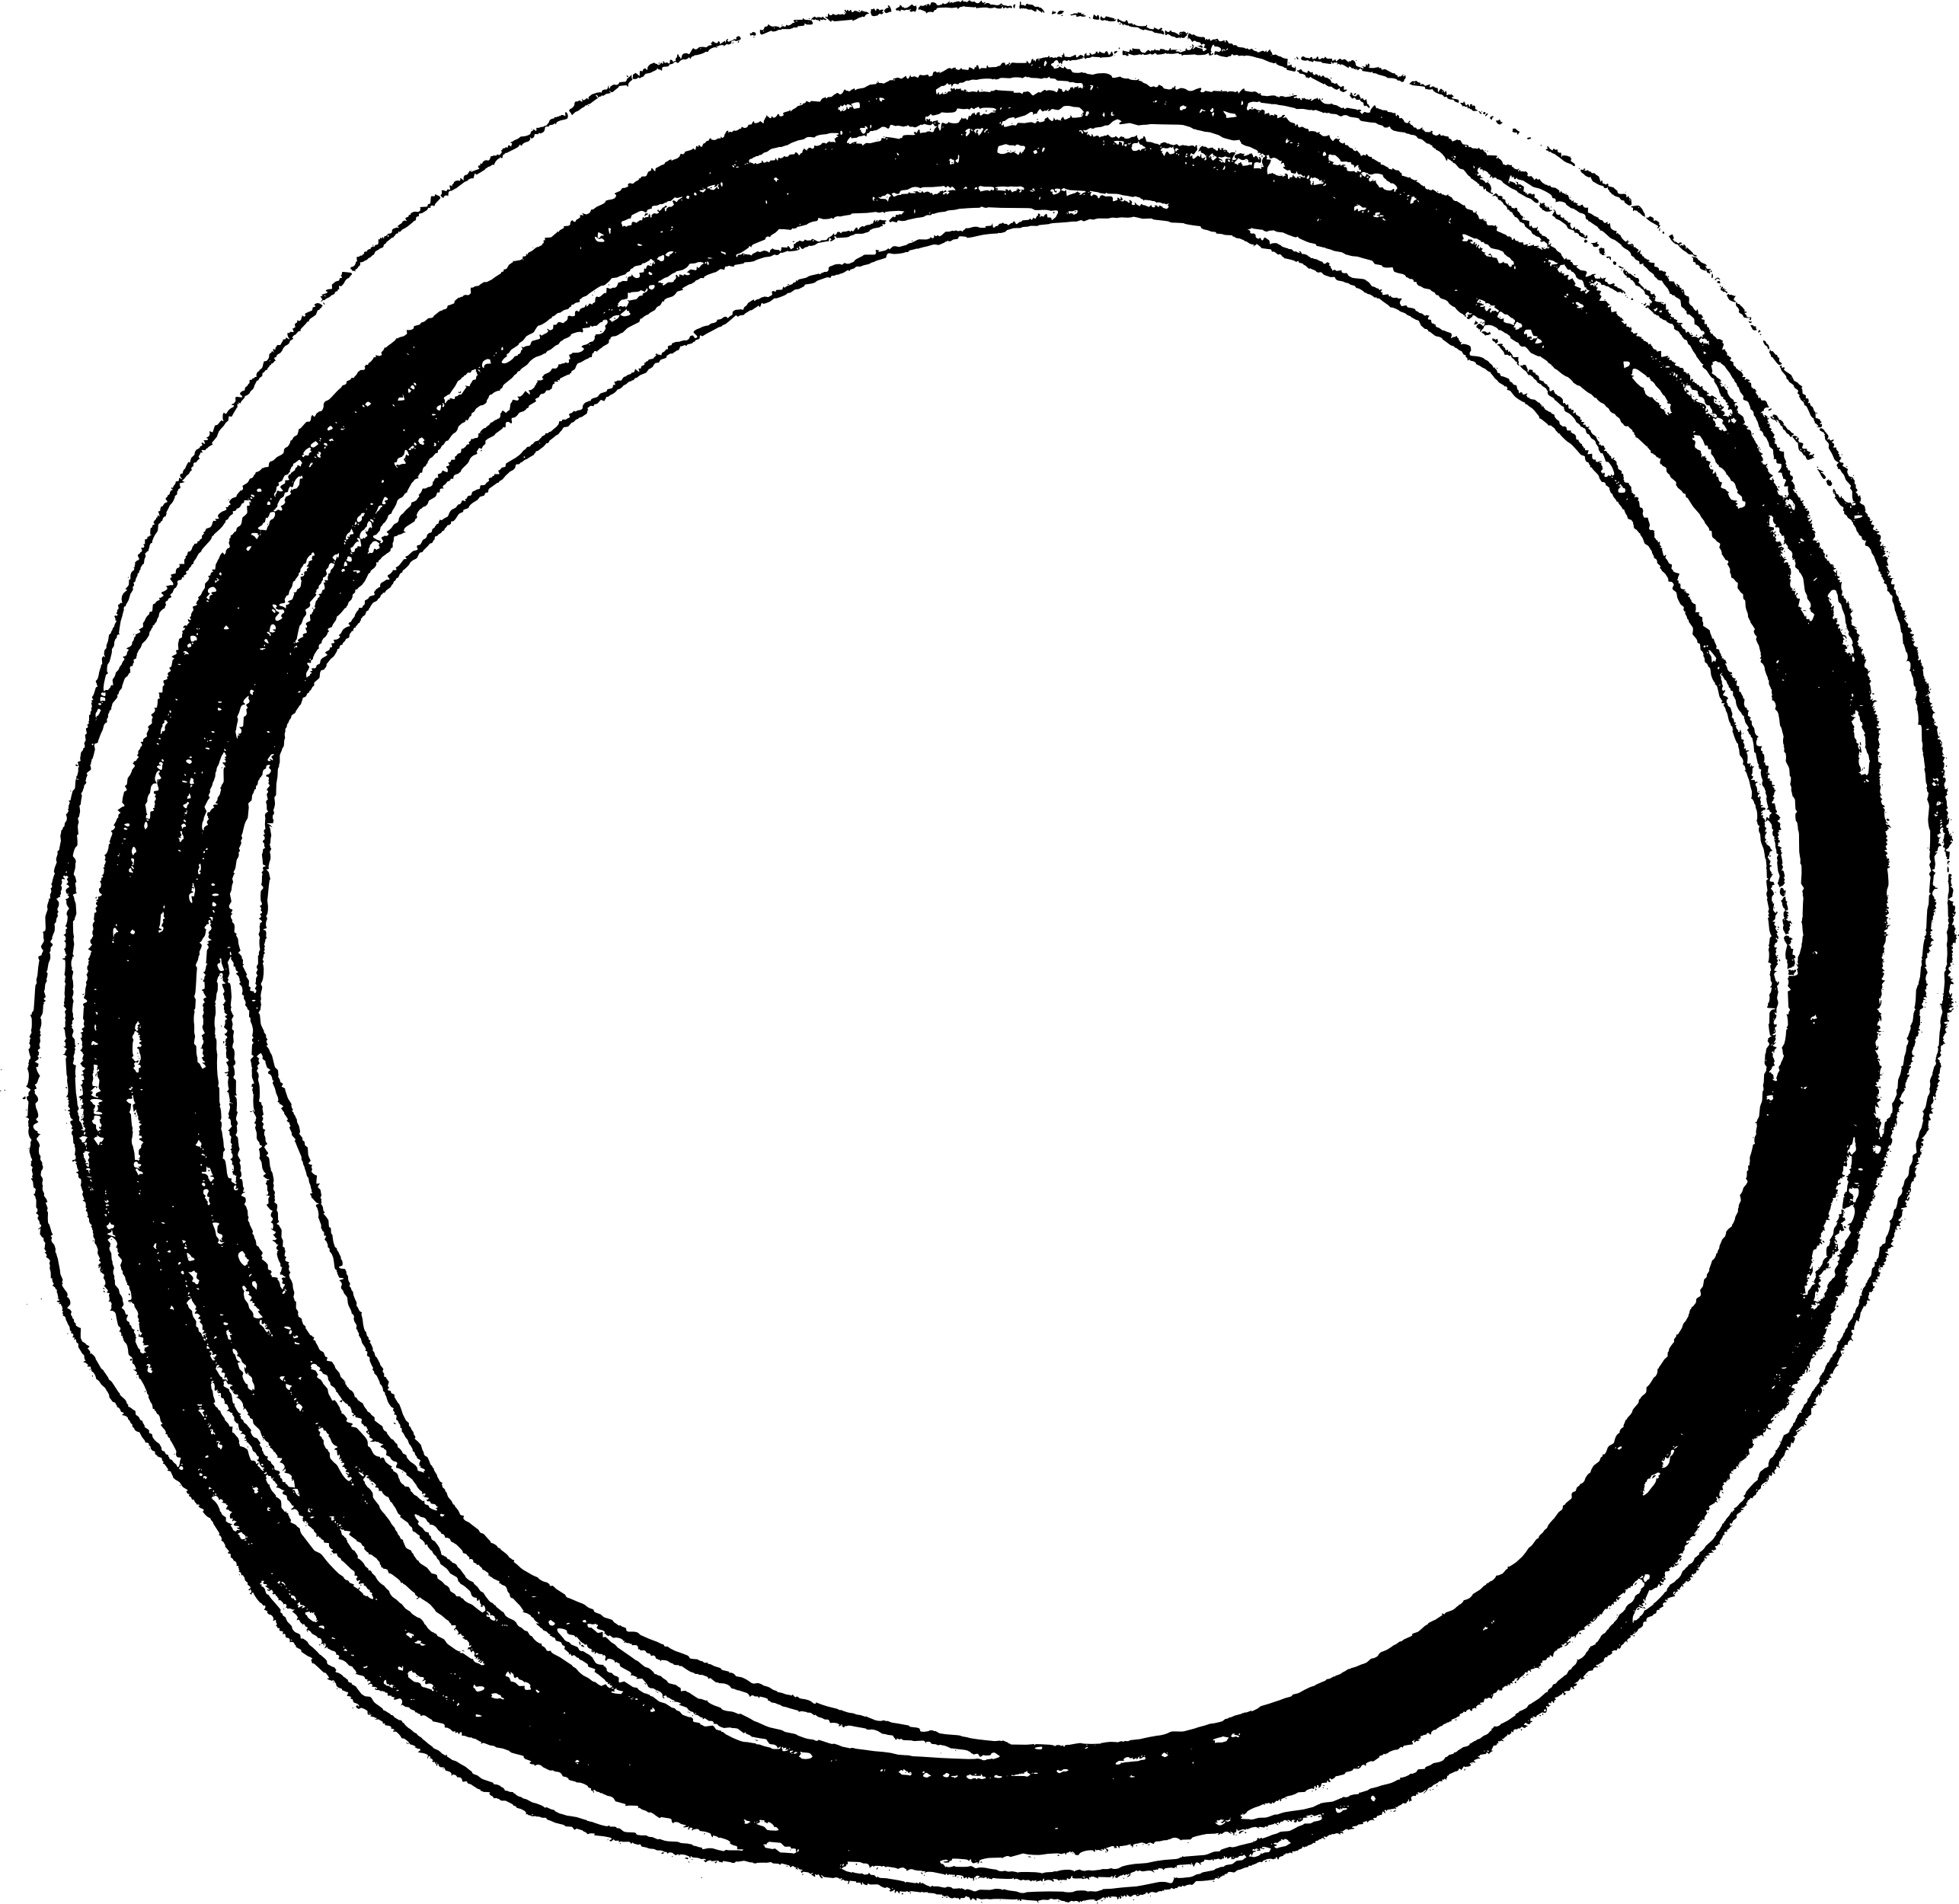 Distressed circle png. Free drawing at getdrawings